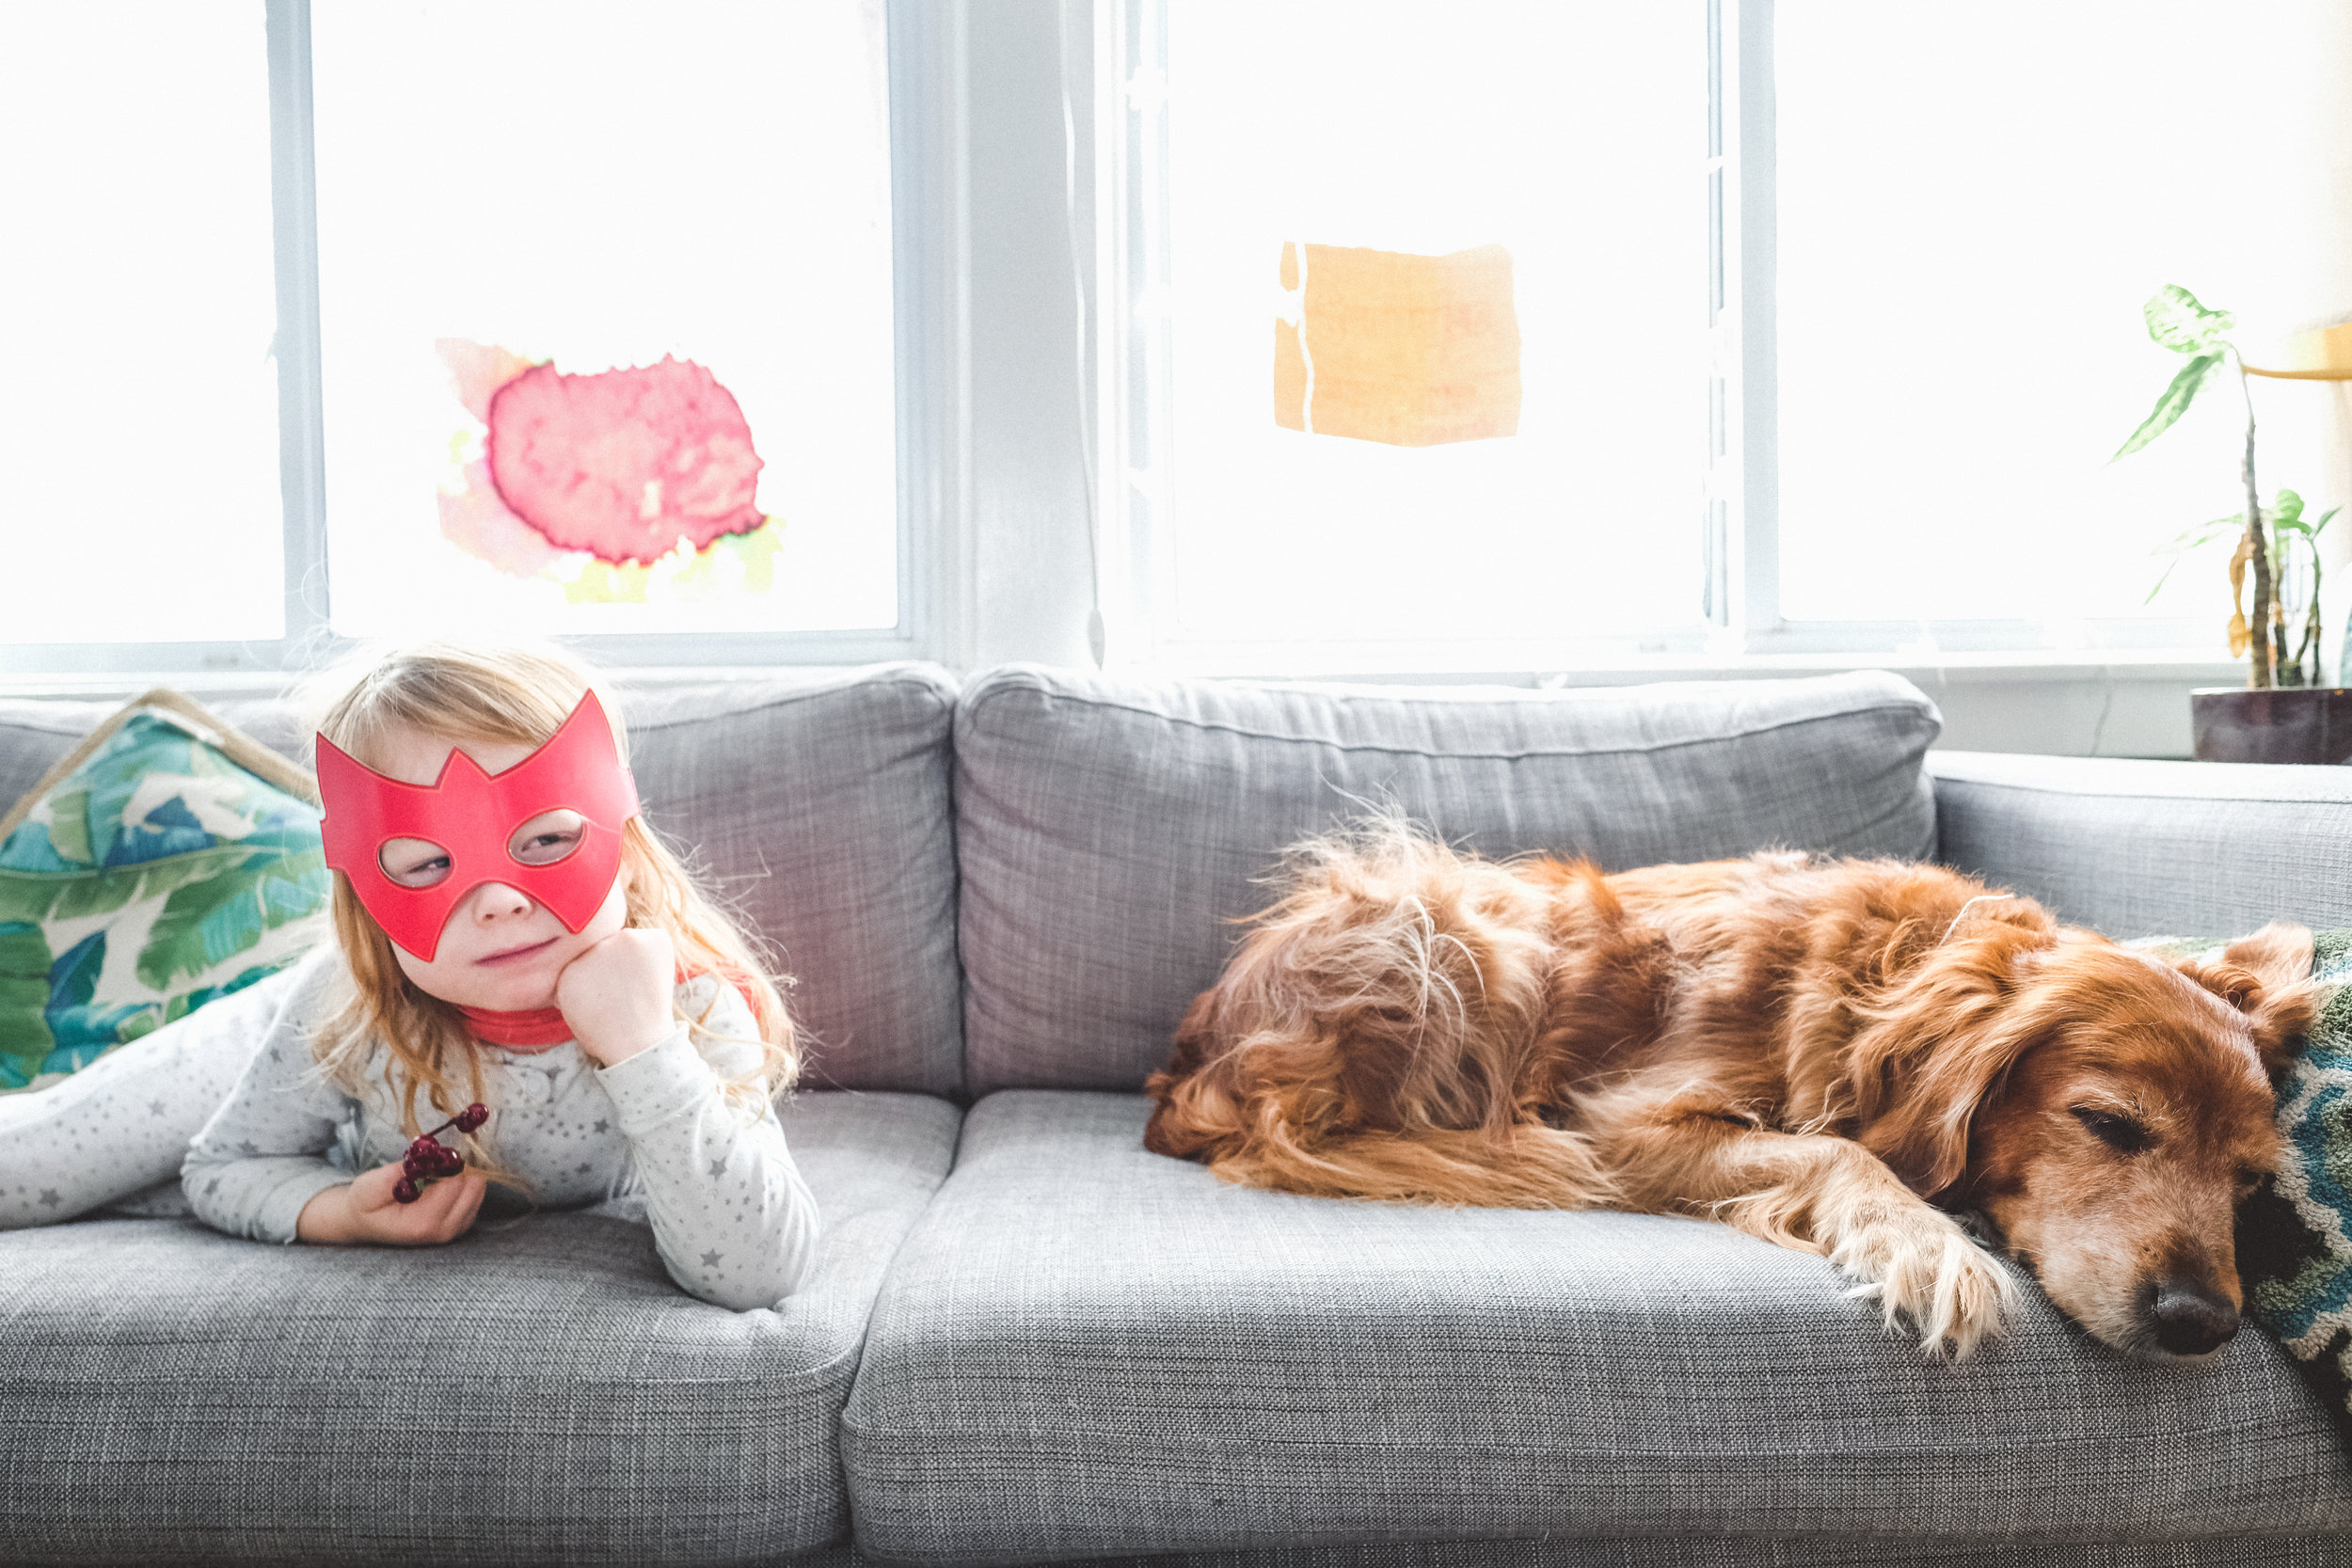 Kid in superhero mask sitting with his dog.